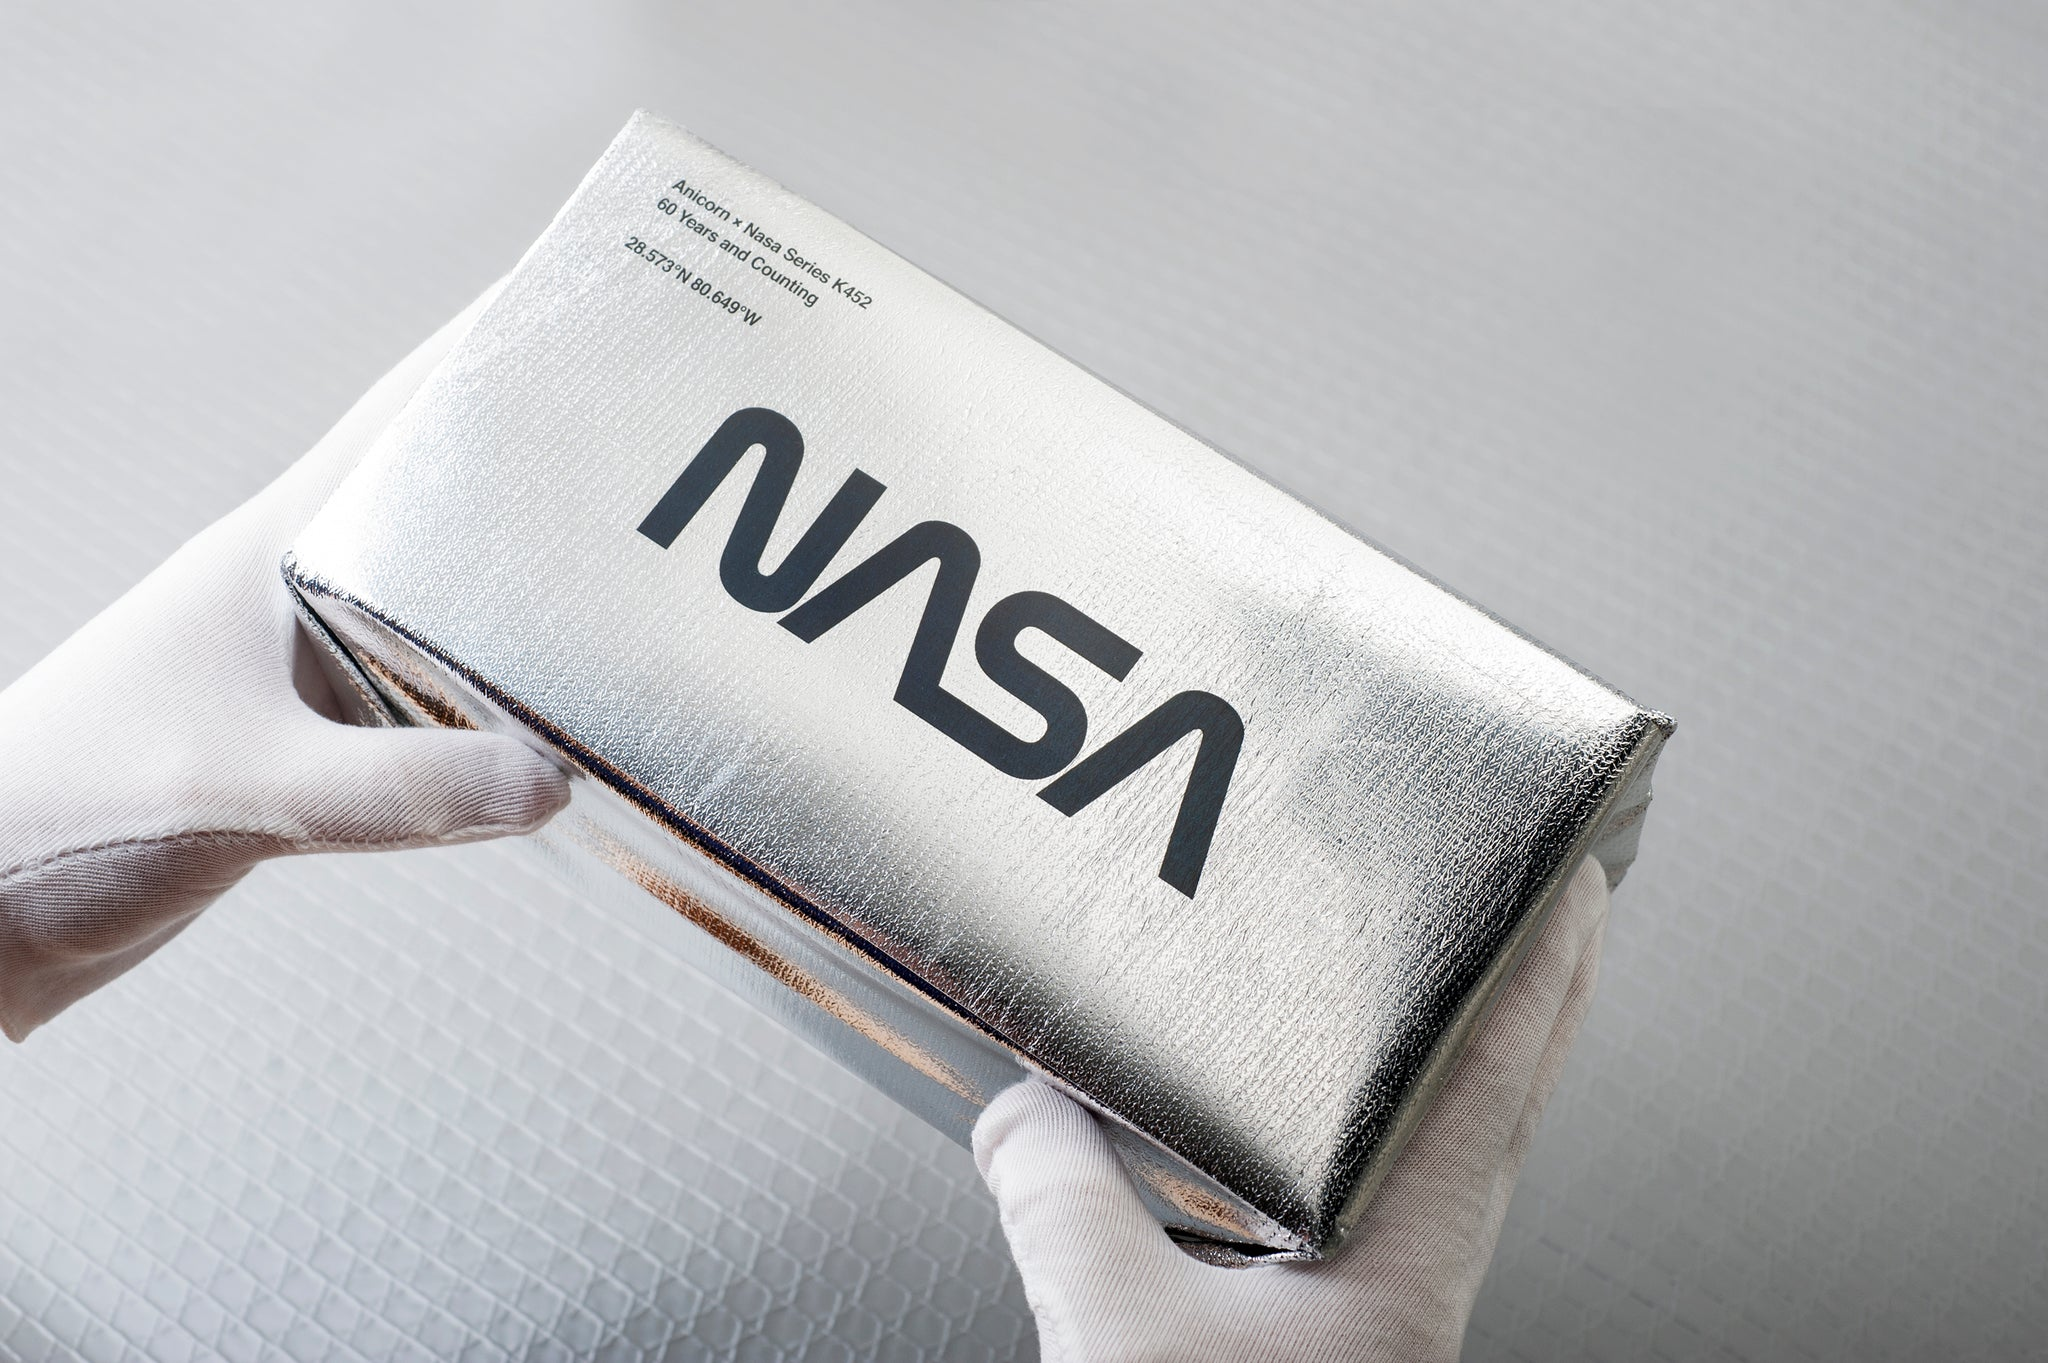 ANICORN × NASA - 60th Anniversary Limited Edition - Anicorn